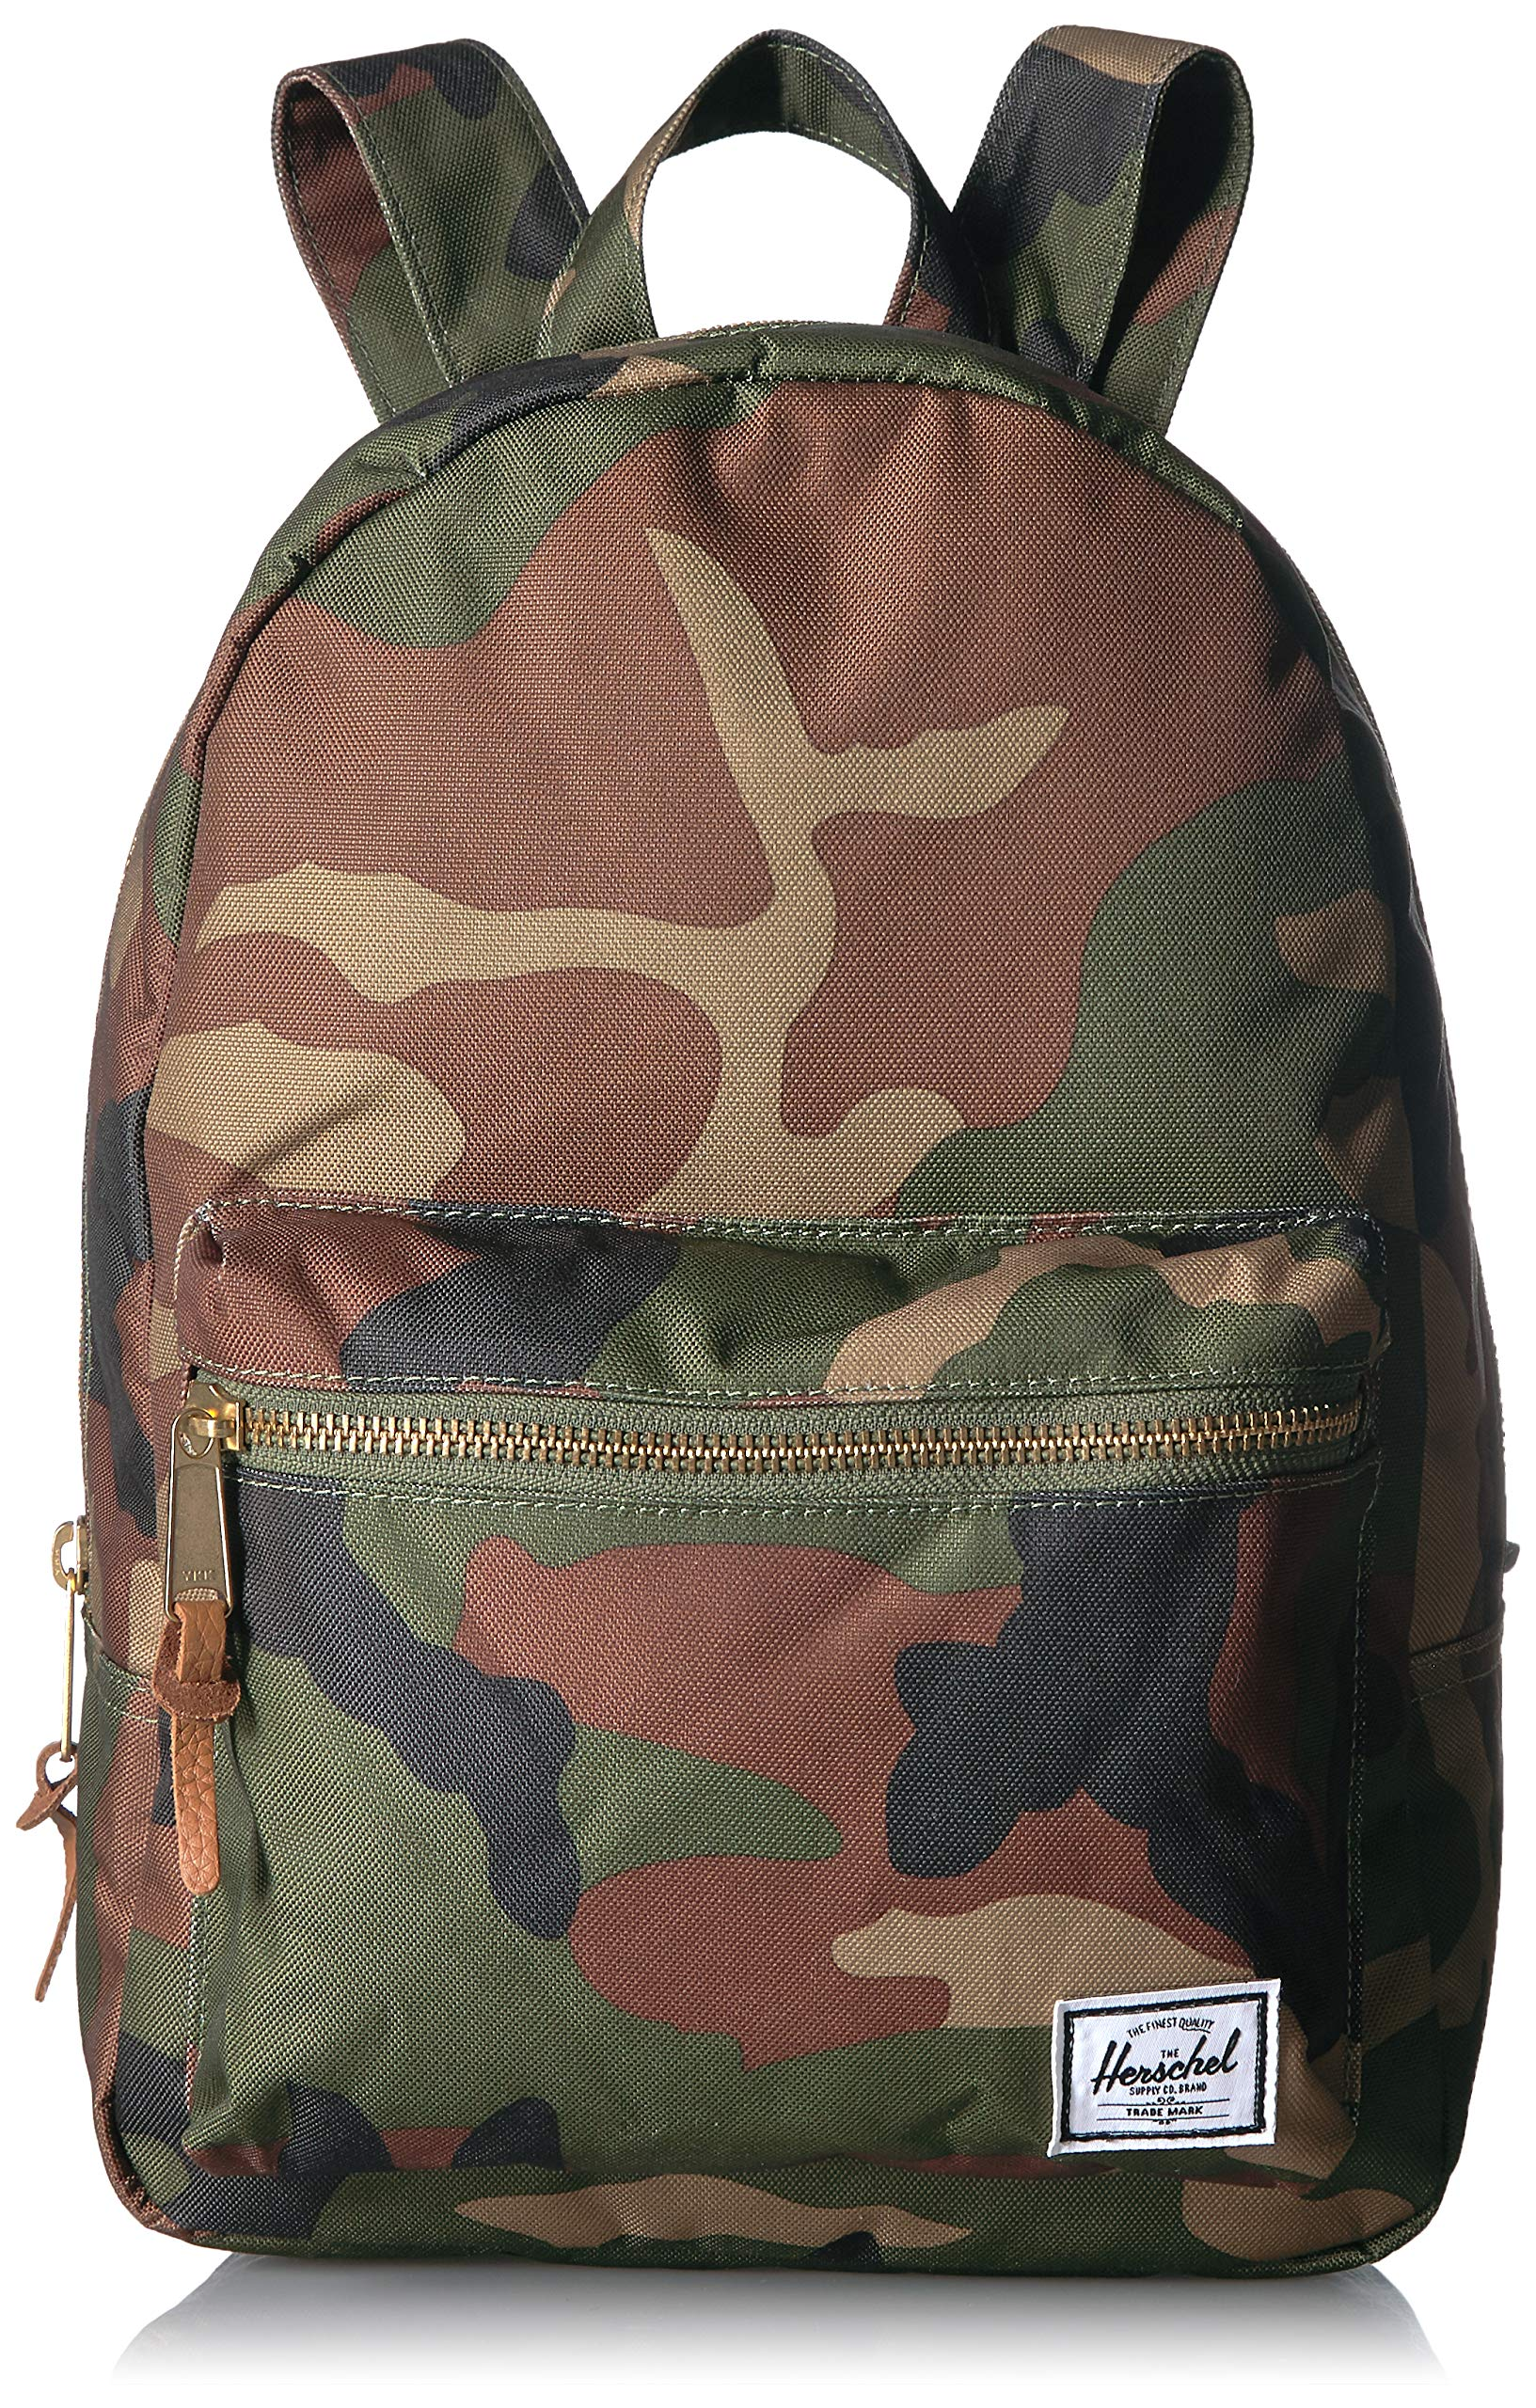 Herschel Supply Co. Grove X-Small Backpack, Woodland Camo, One Size